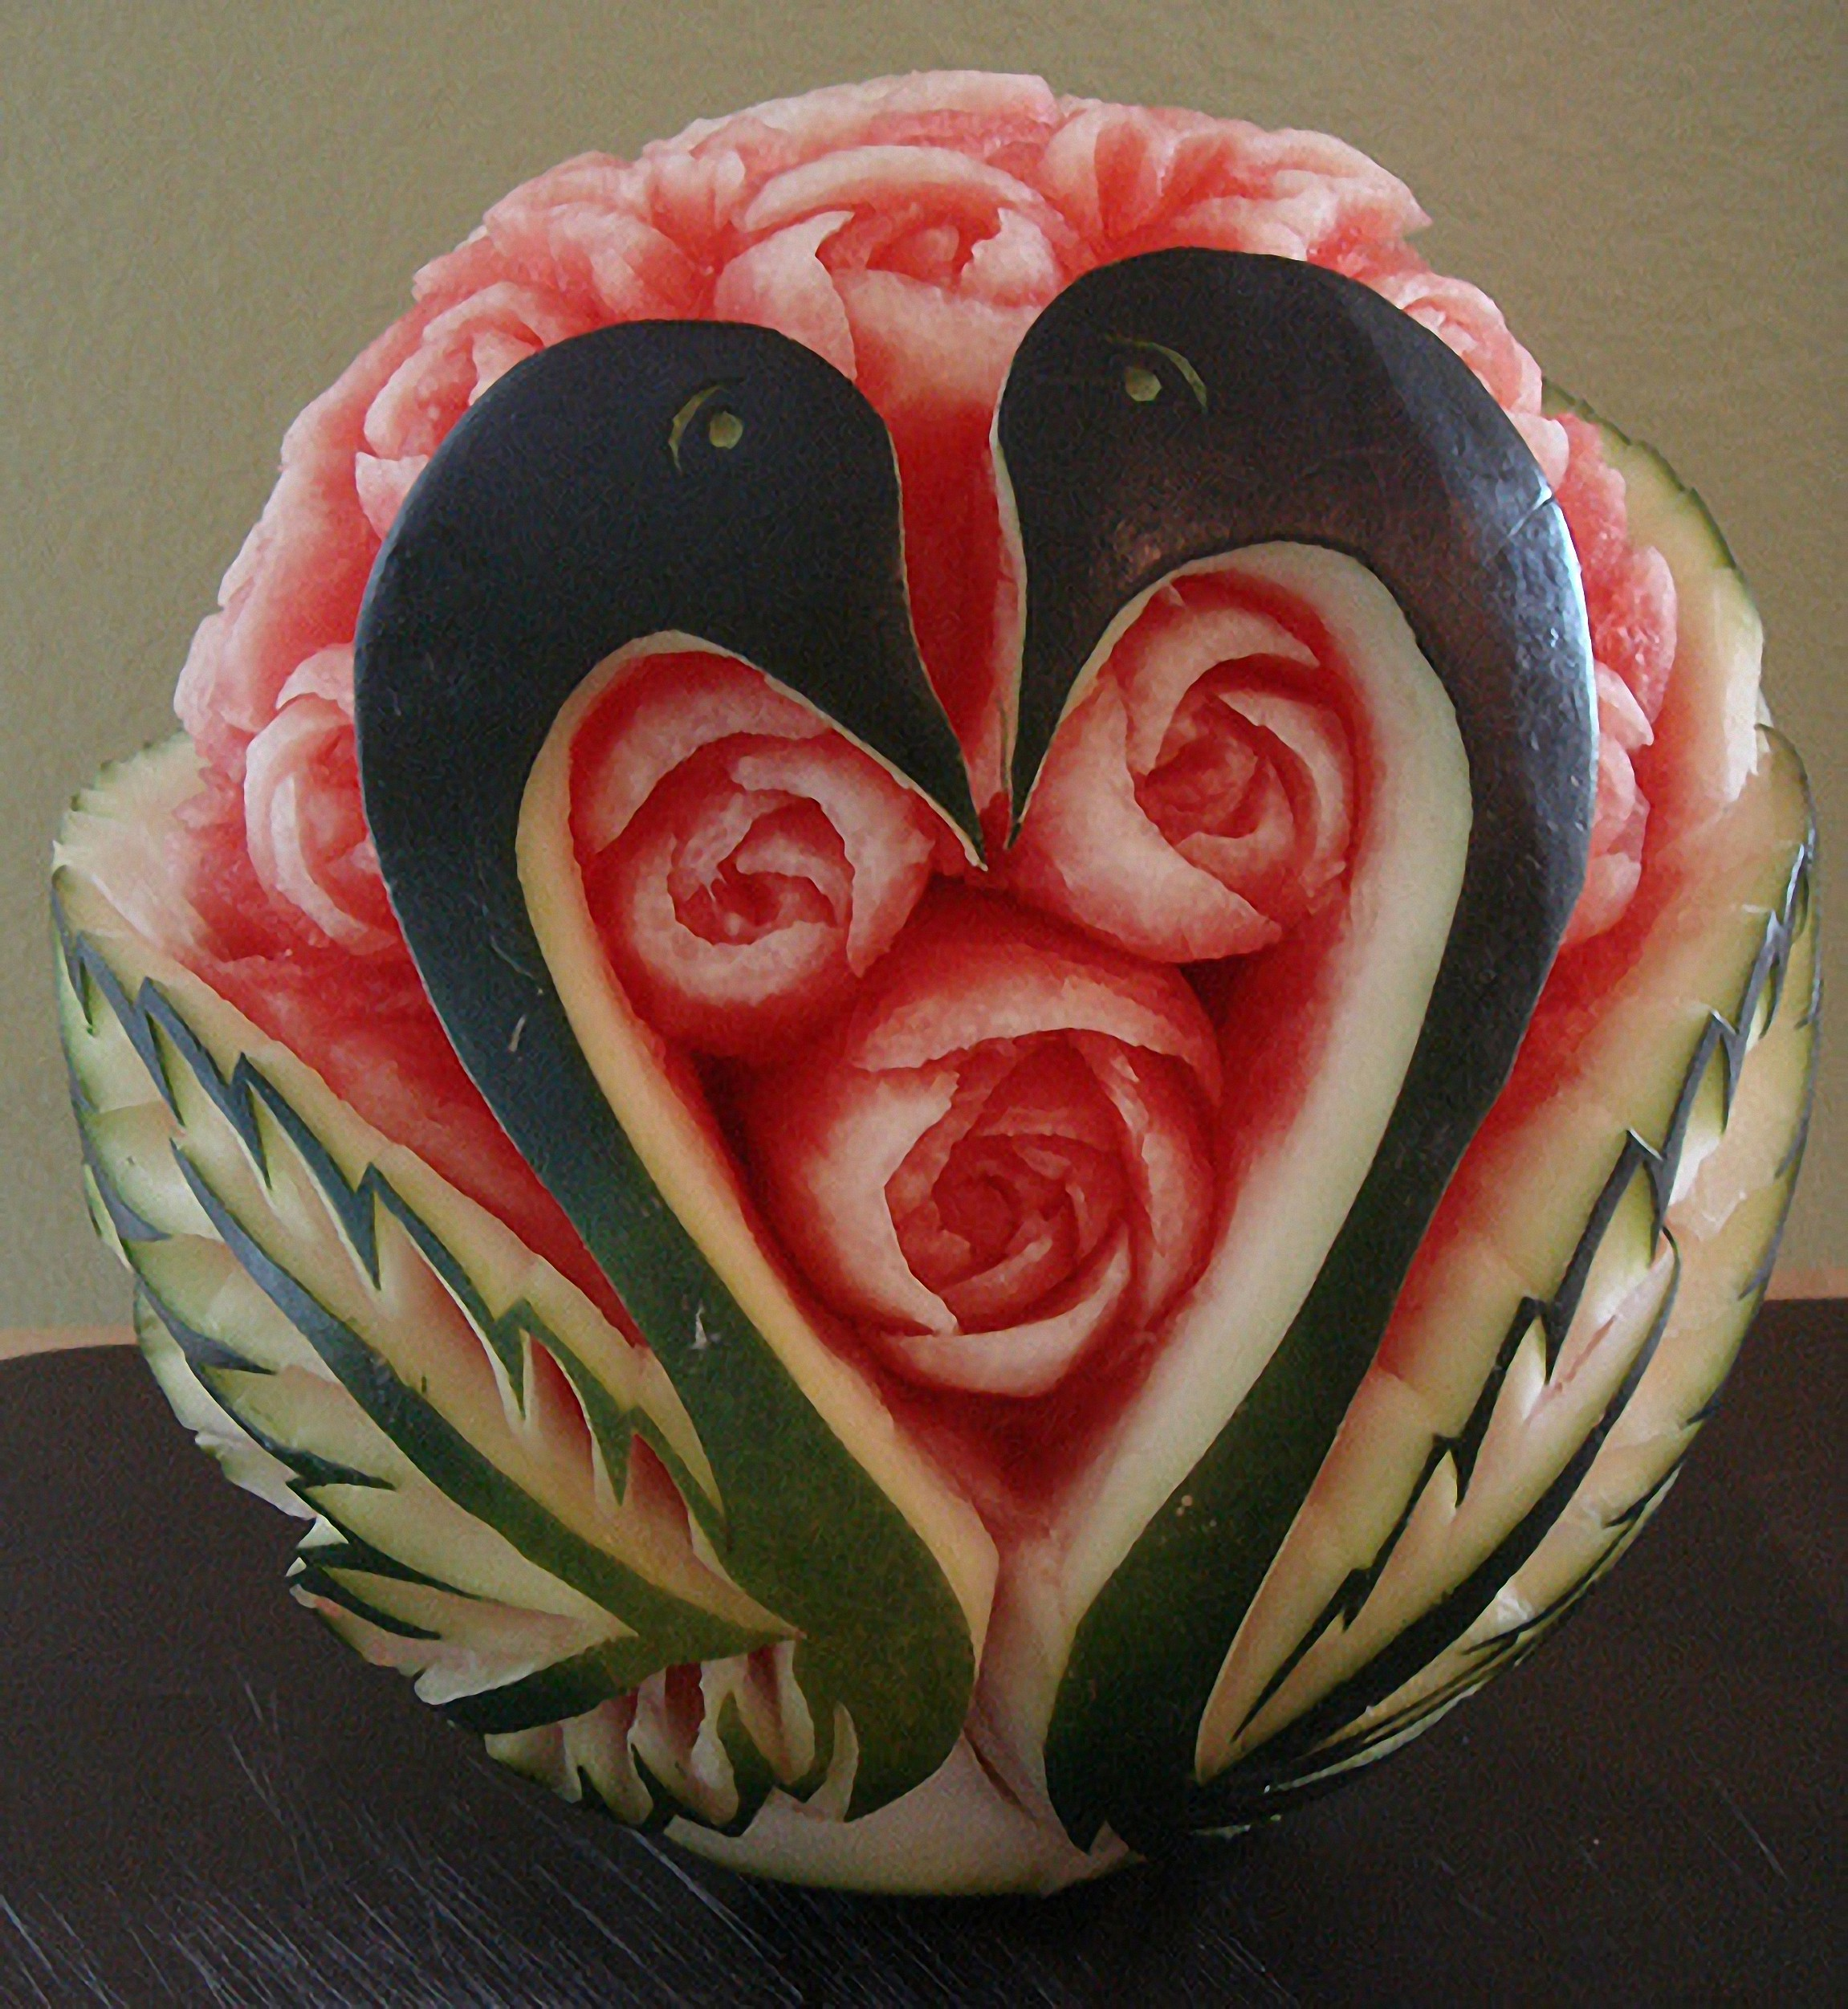 Watermelon-Carving-3(08)